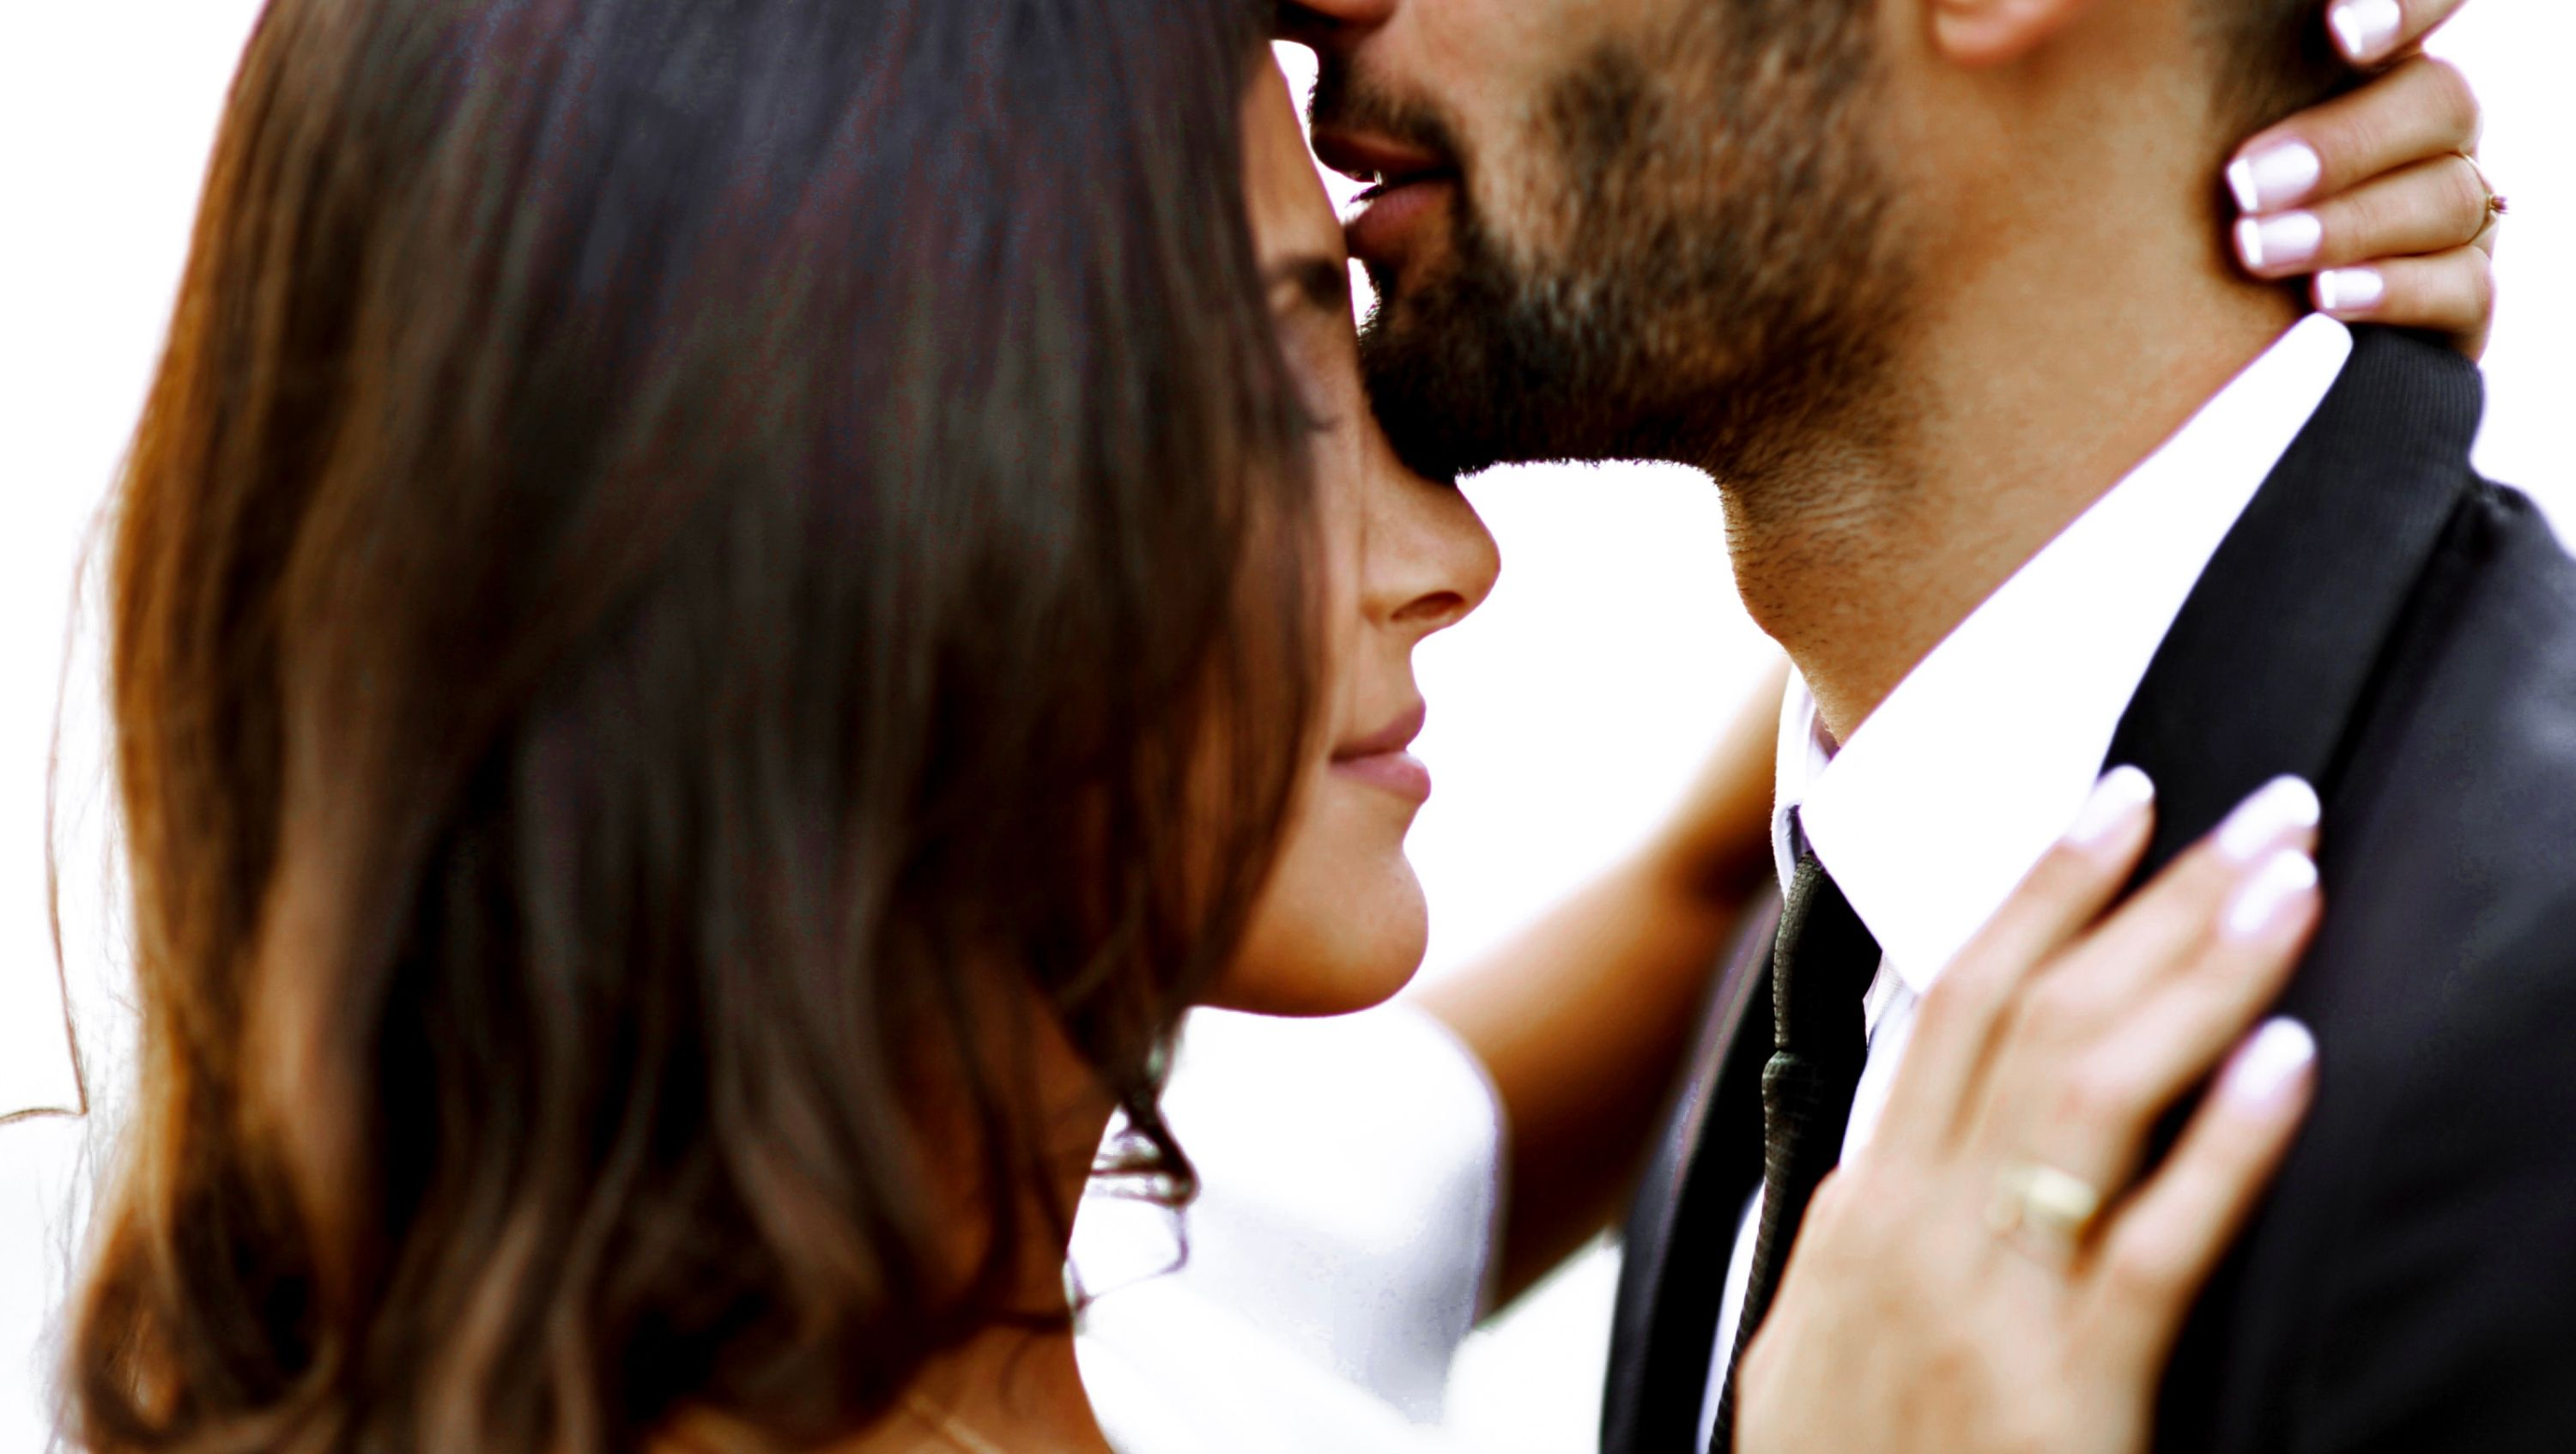 photo of a man with a goatee kissing the forehead of a brunette woman on in a very sweet and intimate embrace